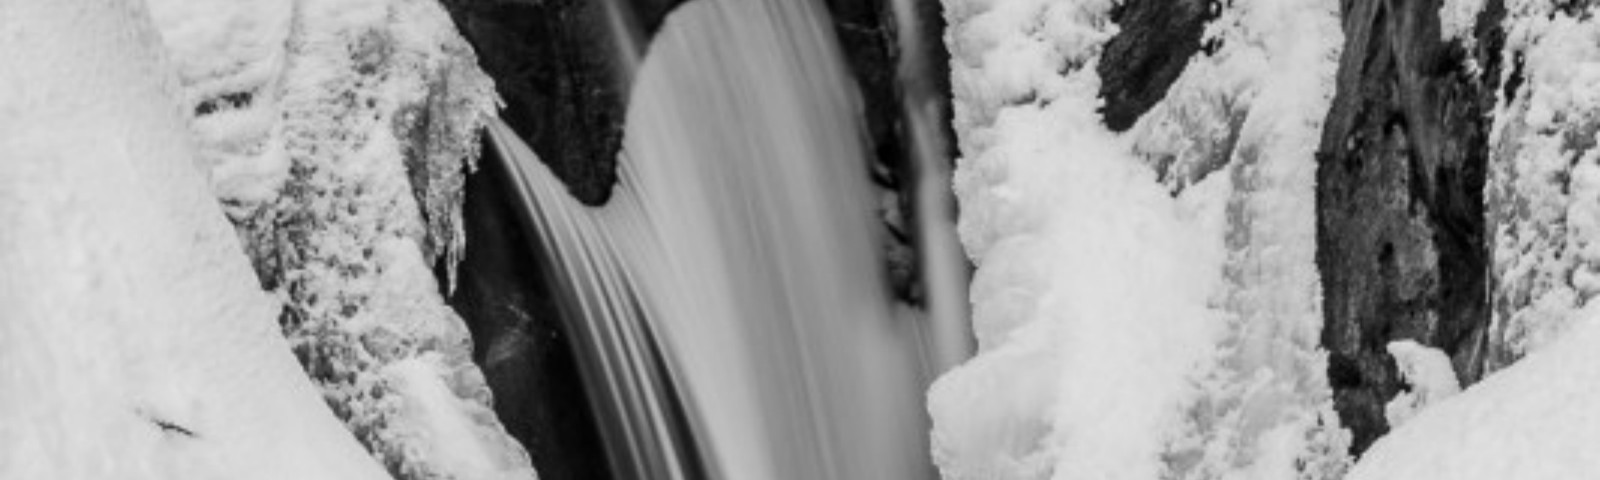 A black and white Pacific Northwest nature photograph of a snow covered, partially frozen Christine Falls at Mount Rainier National Park, Washington.